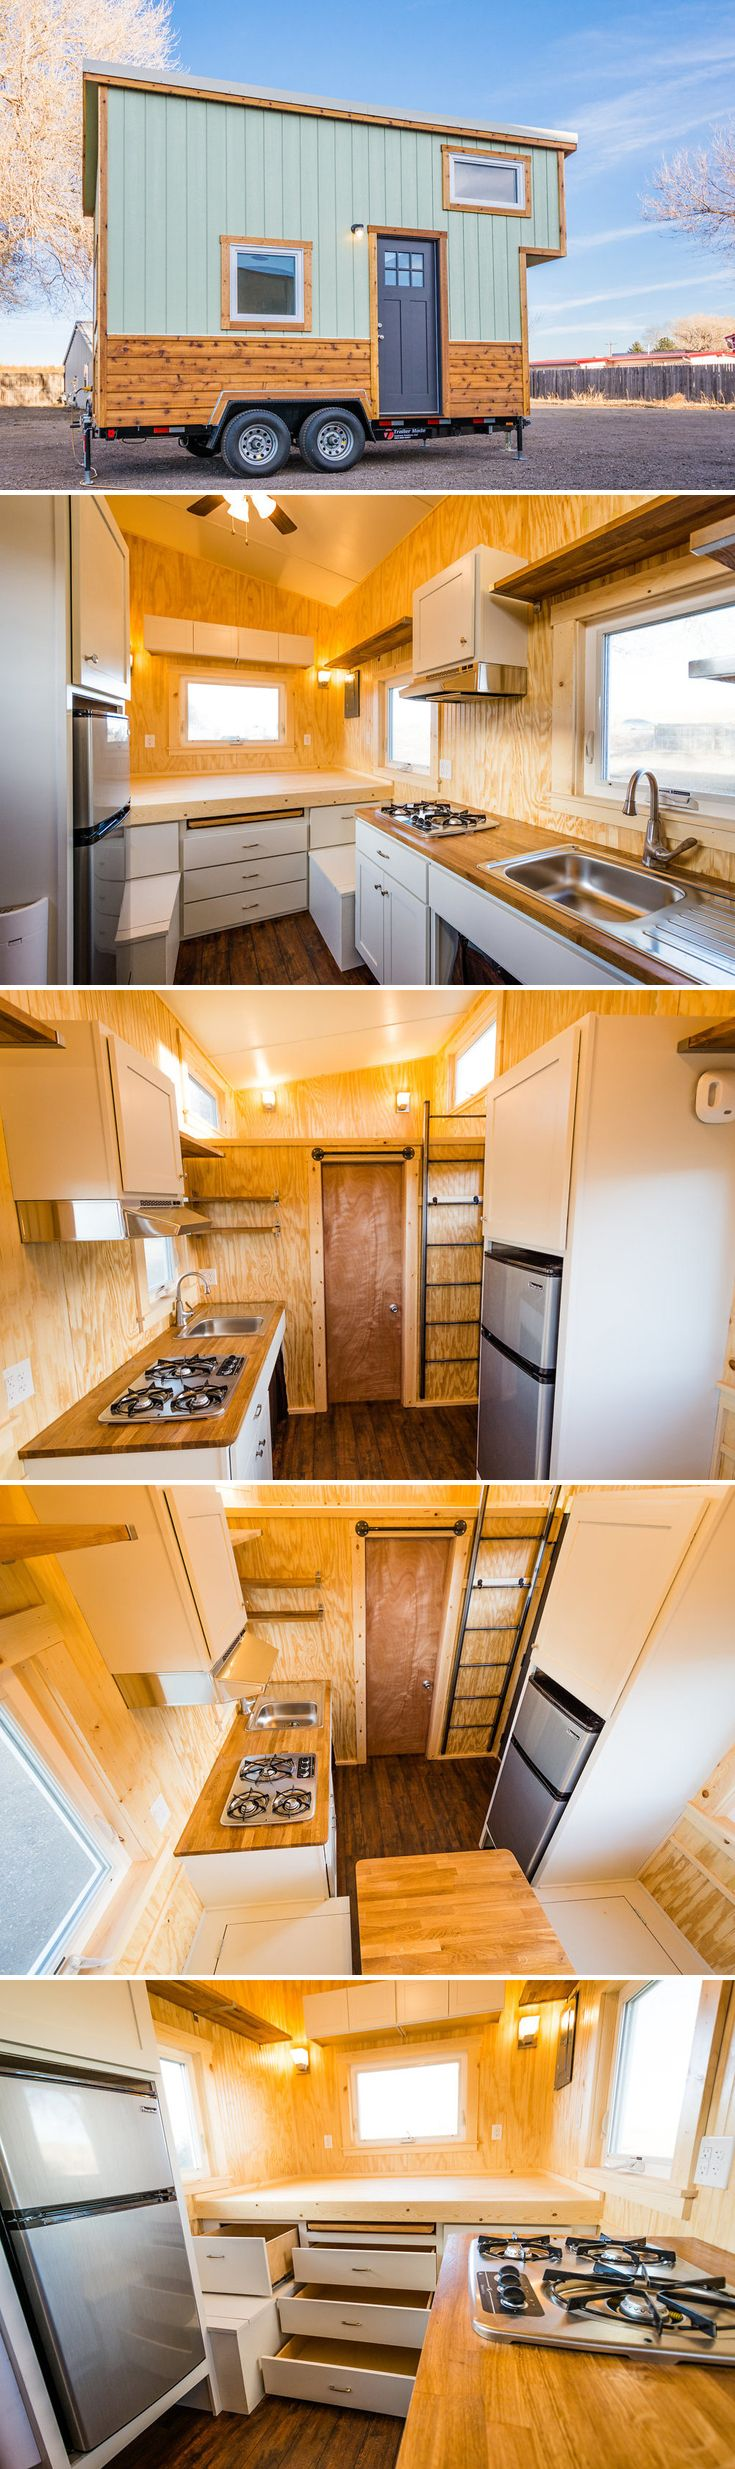 This custom 16' tiny house features a main level sleeping platform and an additional sleeping loft with ladder access. Sale price: $39,000.